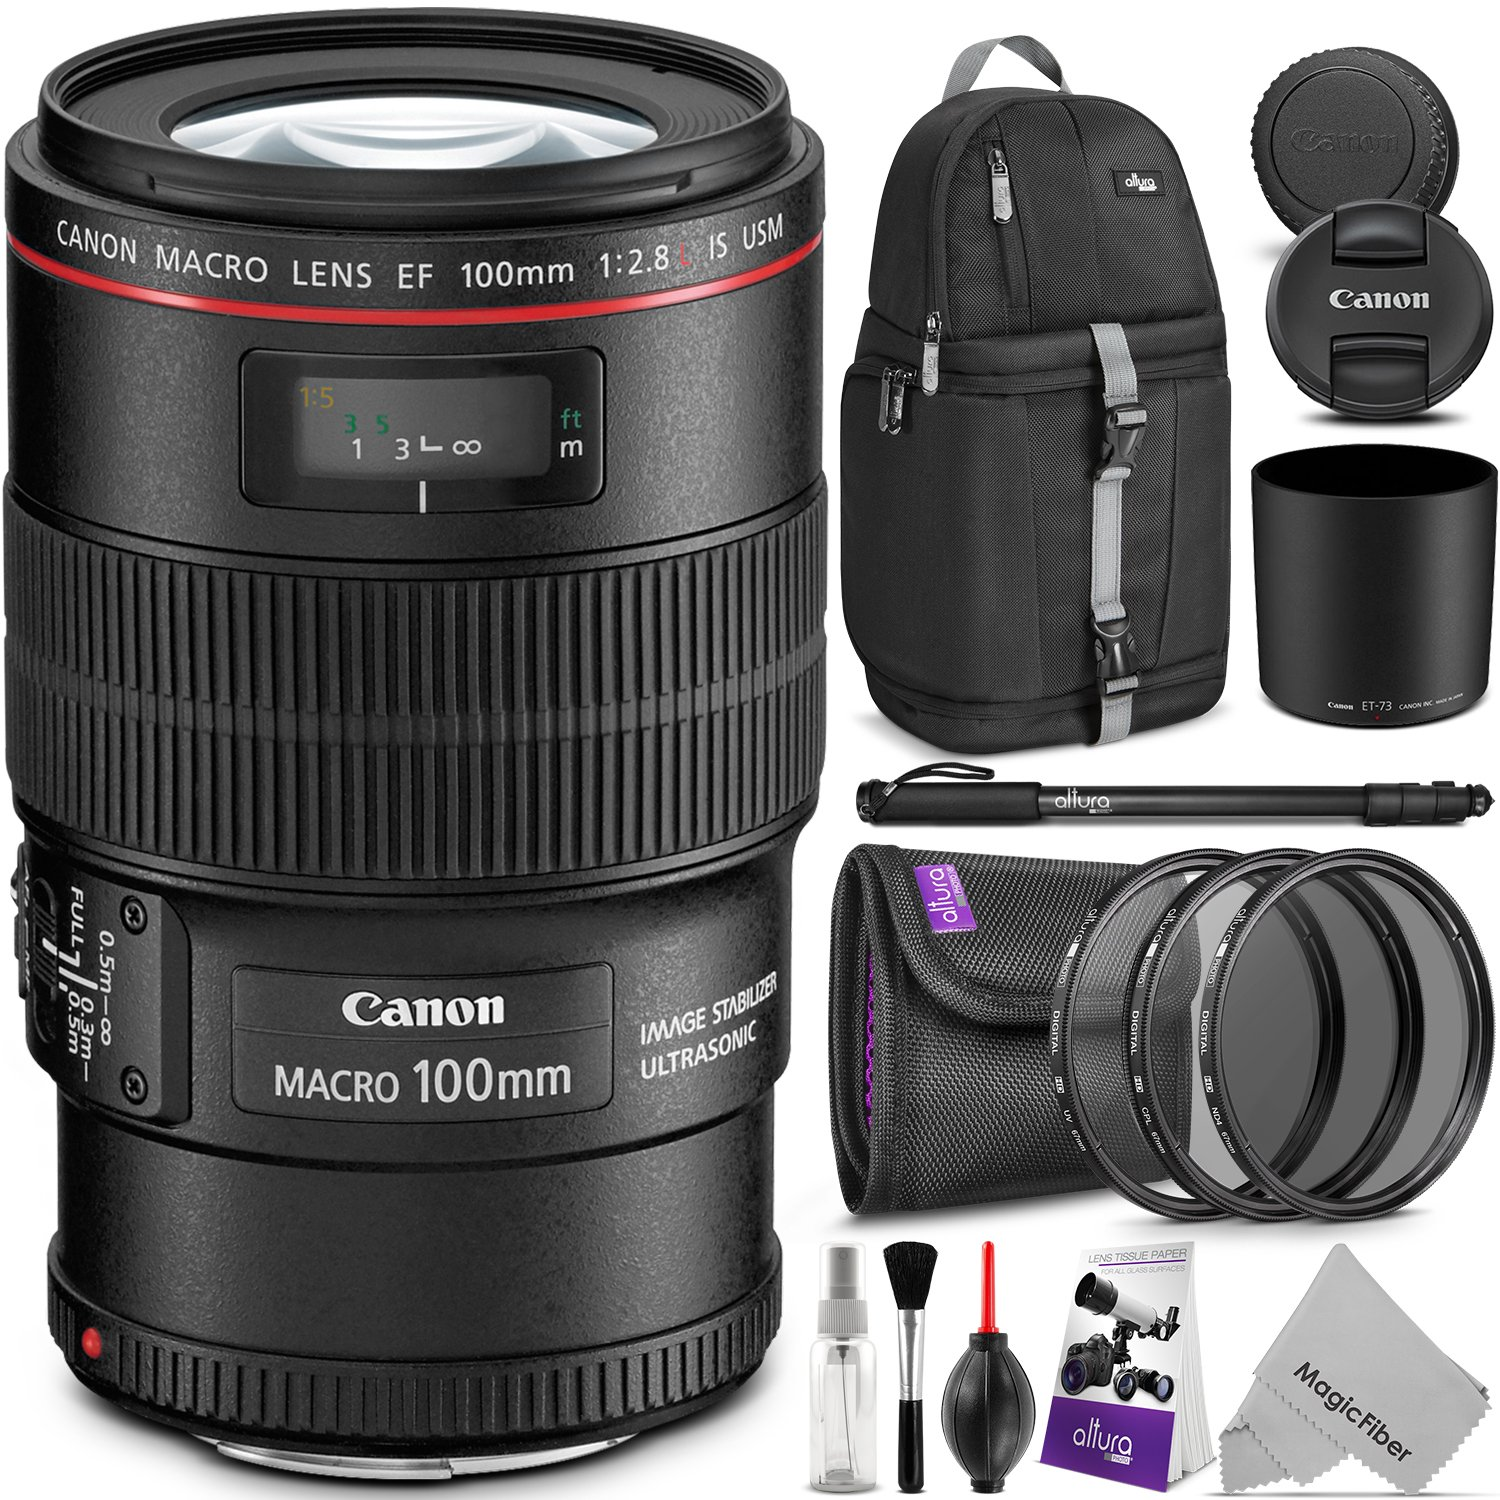 Canon EF 100mm f/2.8L IS USM Macro Lens w/ Advanced Photo and Travel Bundle - Includes: Altura Photo Sling Backpack, Monopod, UV-CPL-ND4, Camera Cleaning Set by Goja